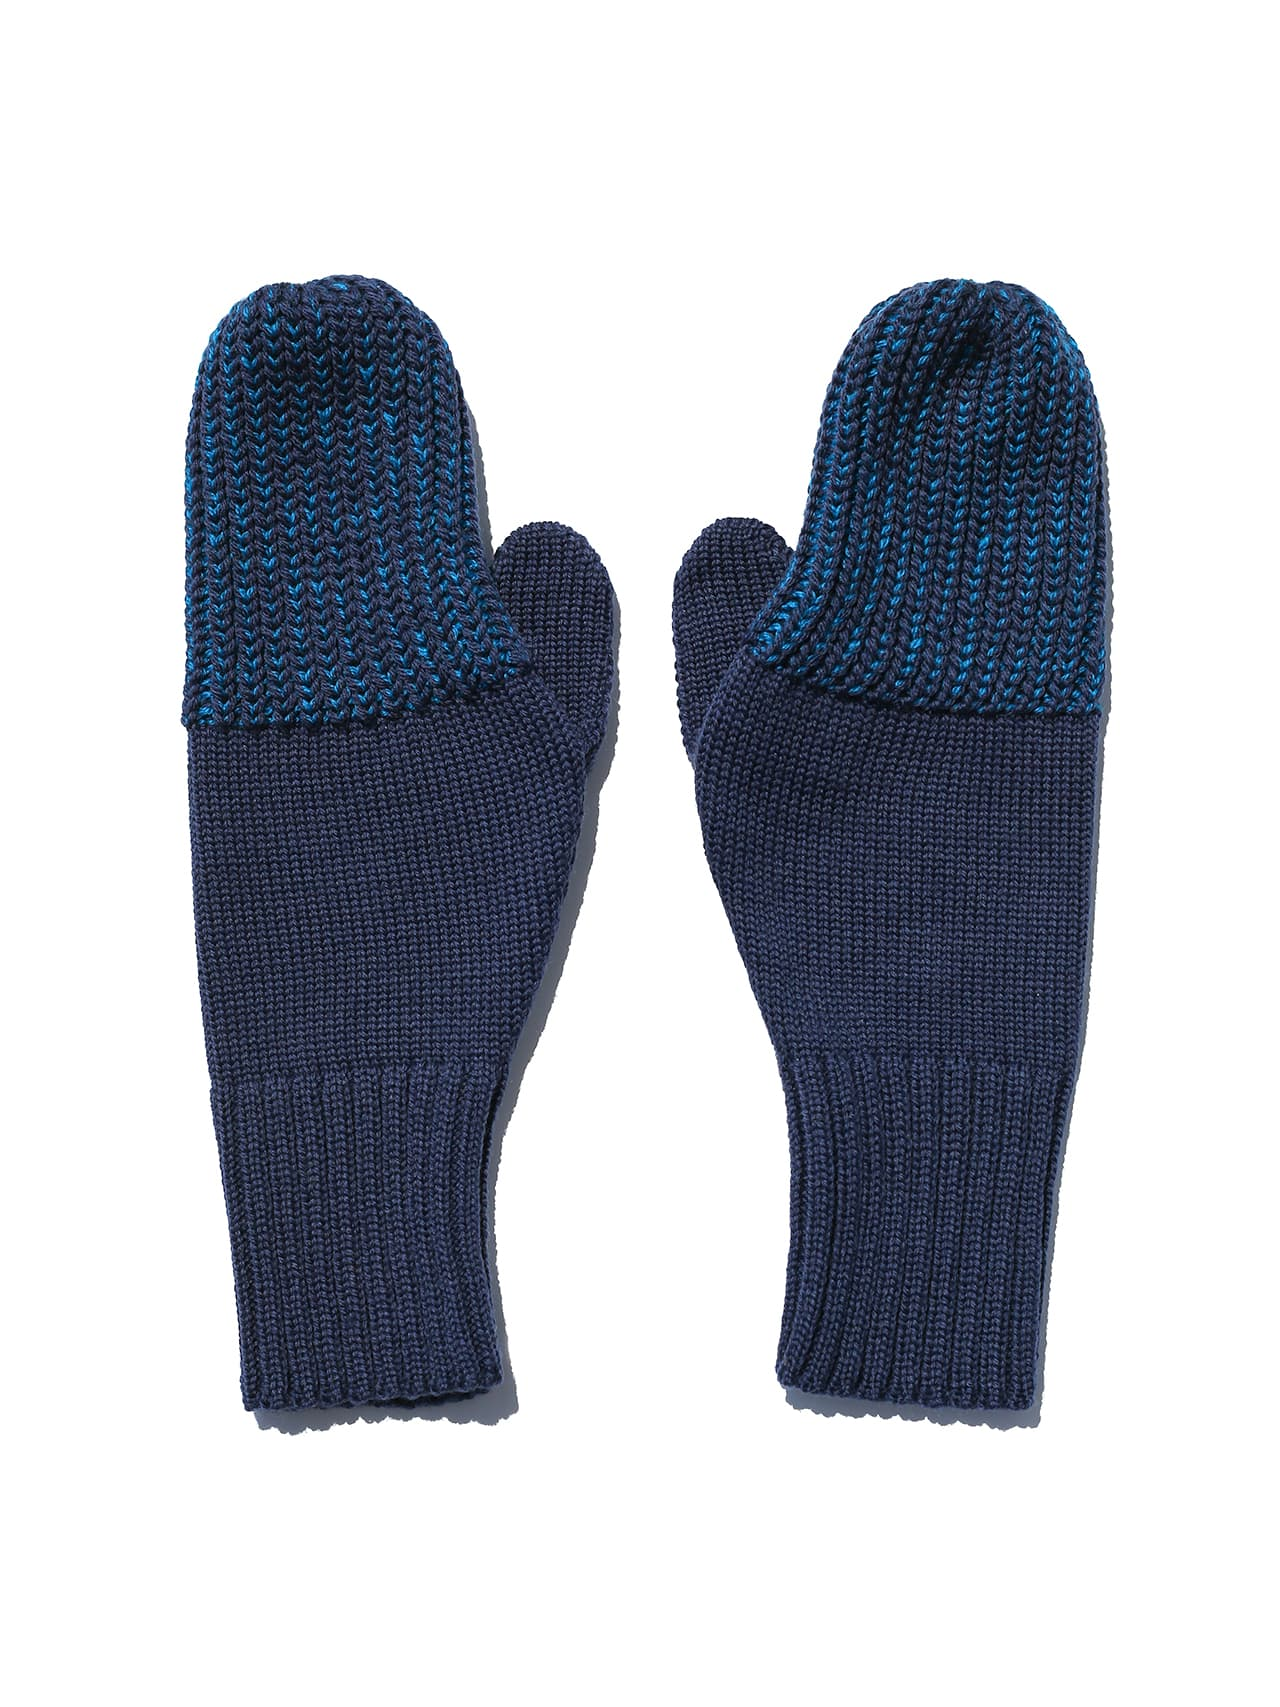 reshaped mittens - electric blue